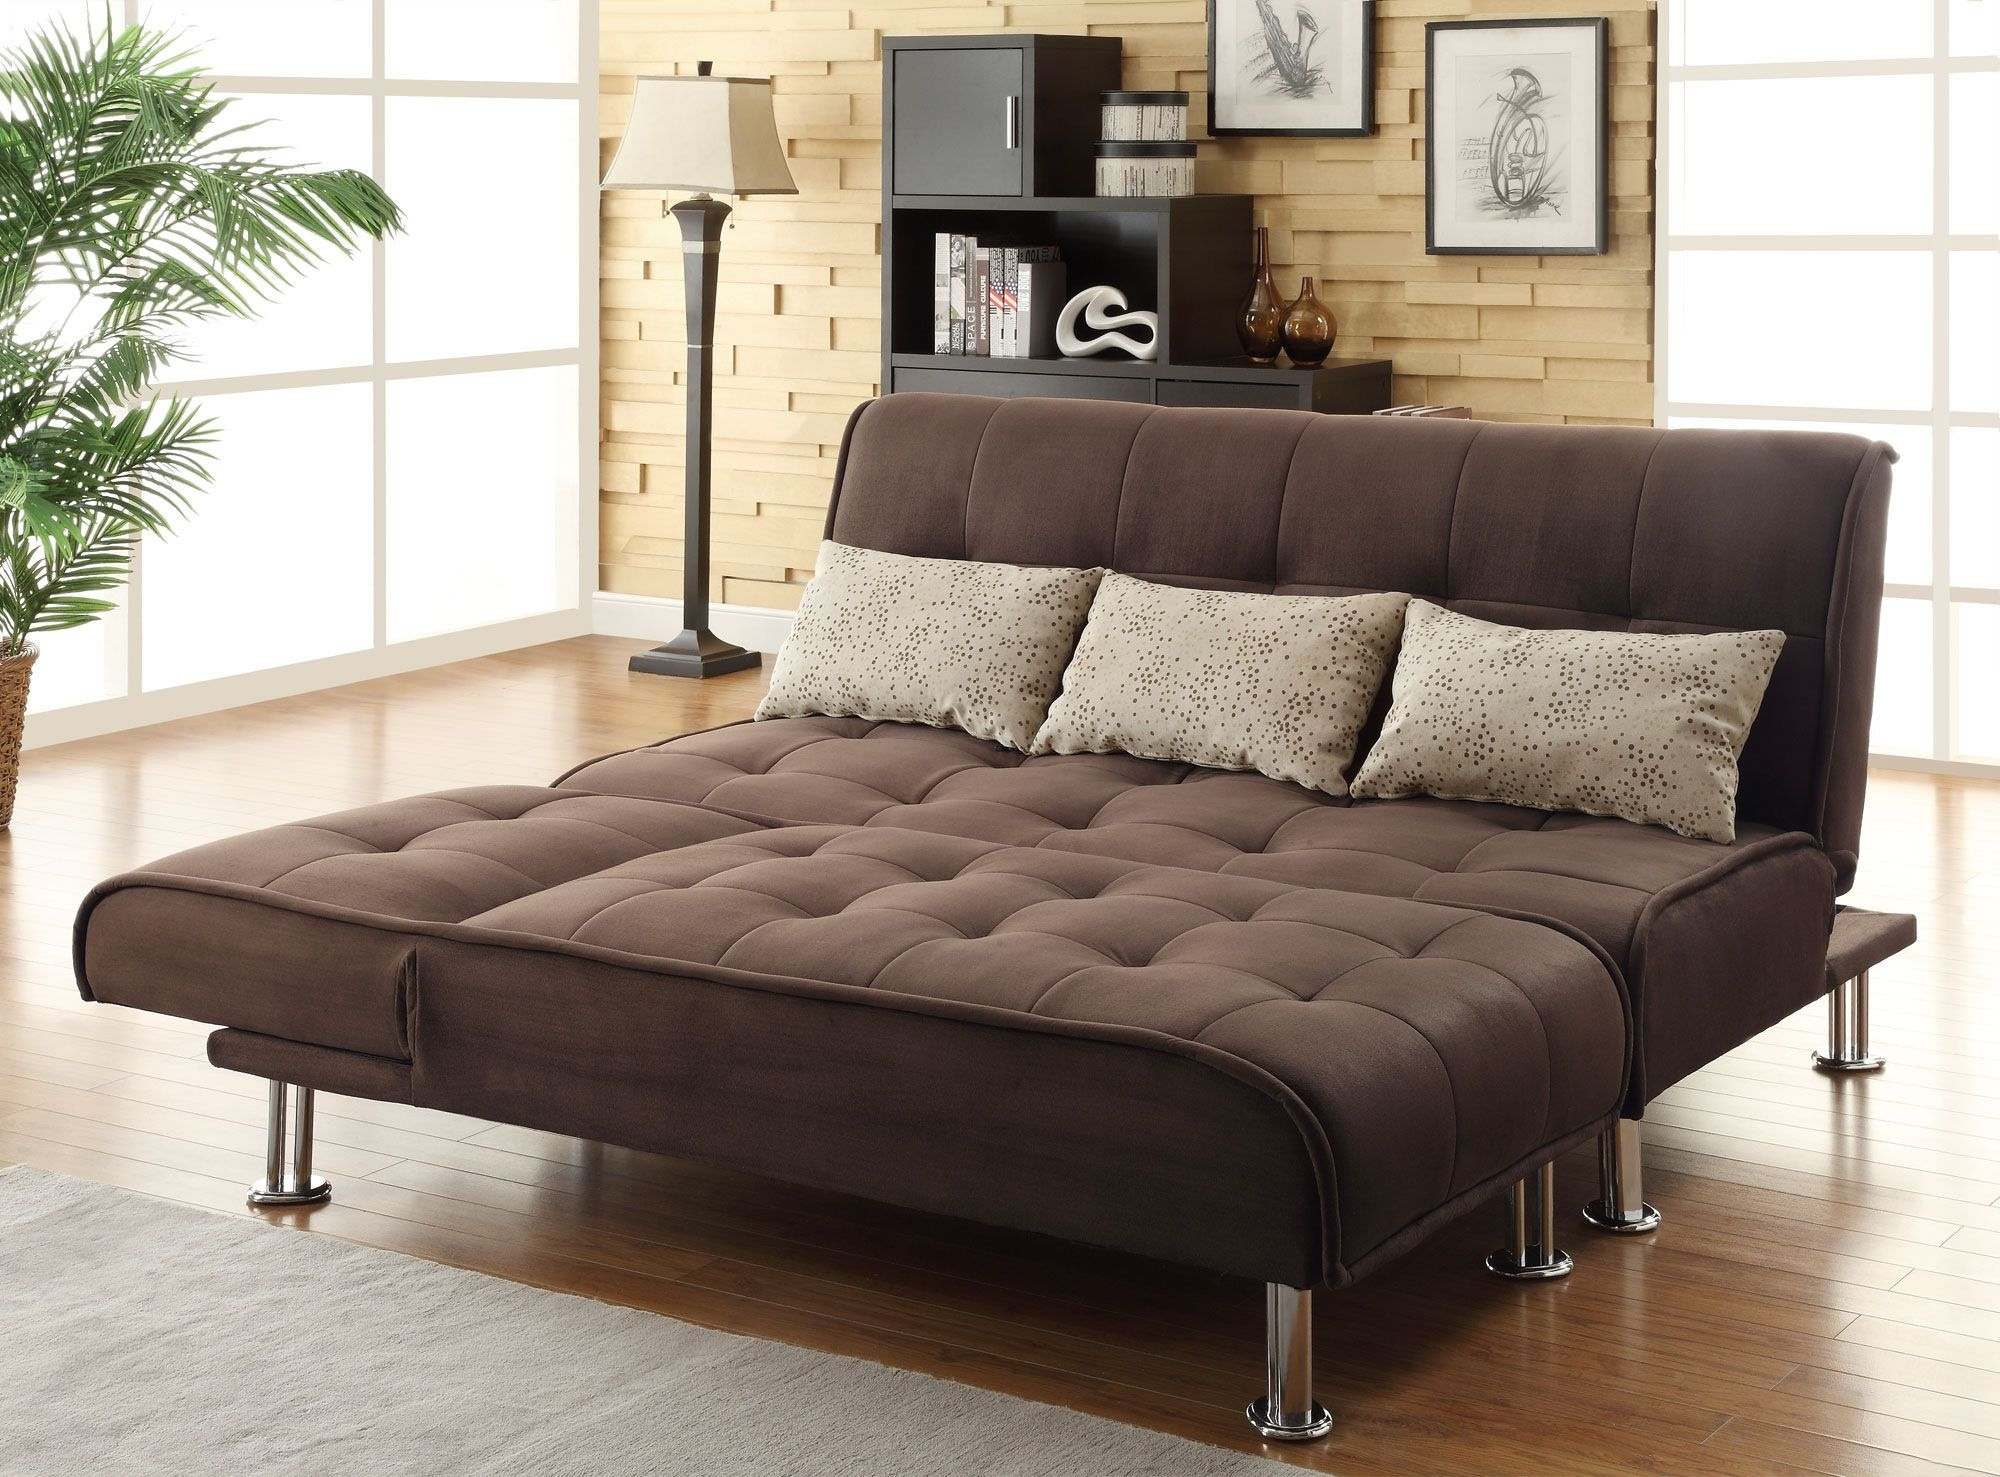 sofas memory foam sofa of nice mattress macys chaise with sleeper macy design sleepers sectional pertaining king leather com size home full furniture queen bed to